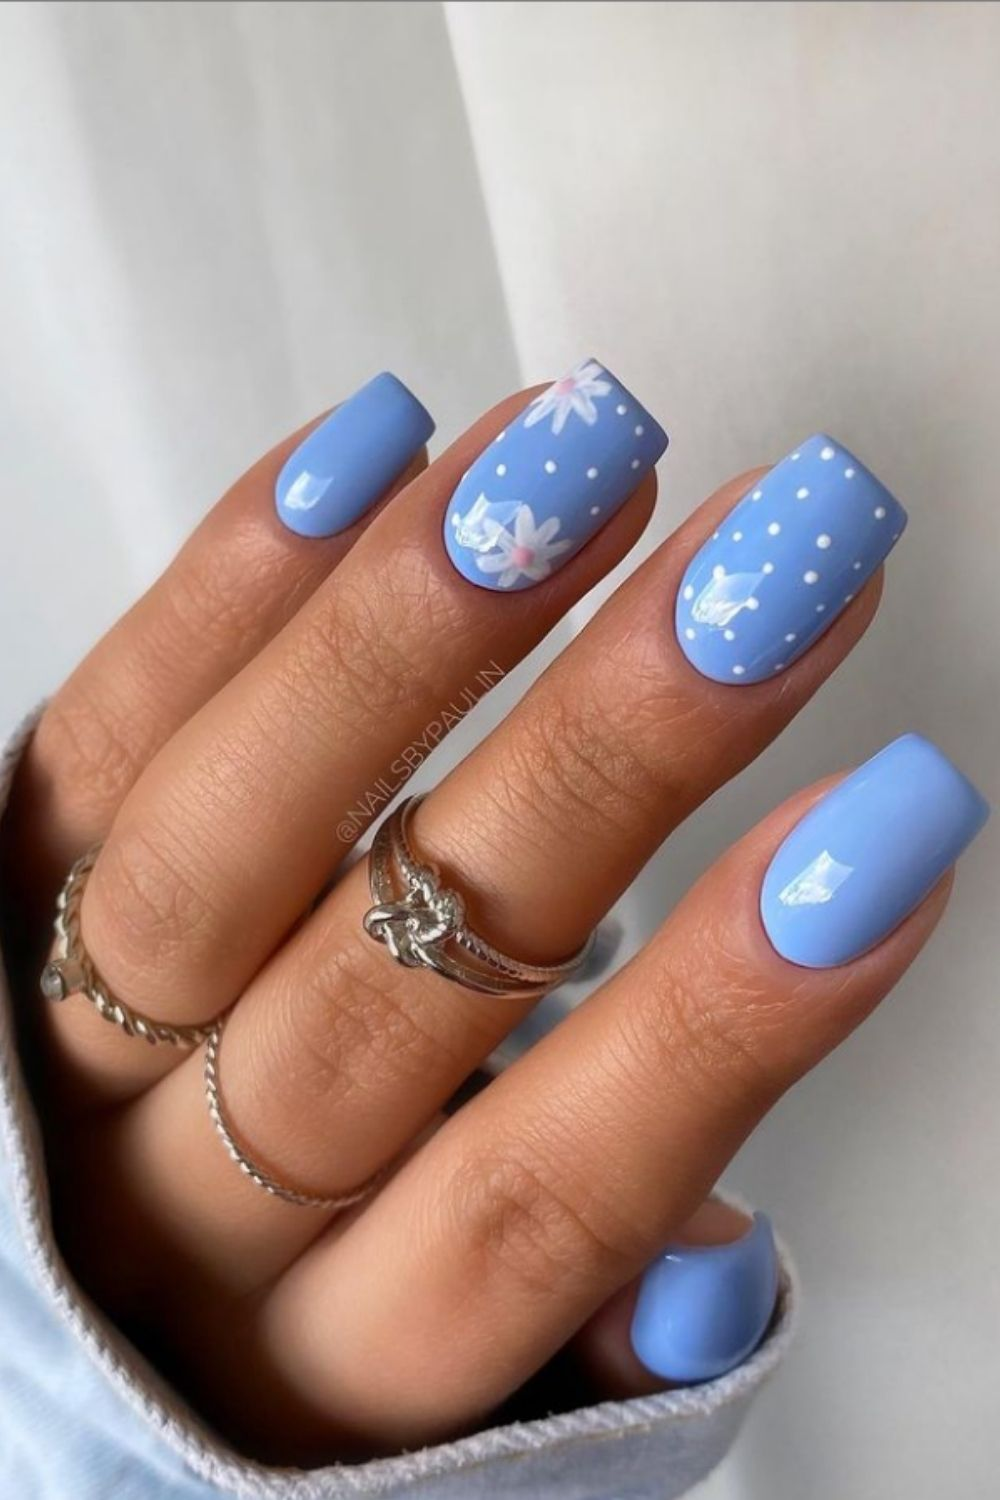 FLOWER NAIL DESIGNS | 36 AMAZING NAIL IDEAS TO INSPIRE YOUR SUMMER 2021